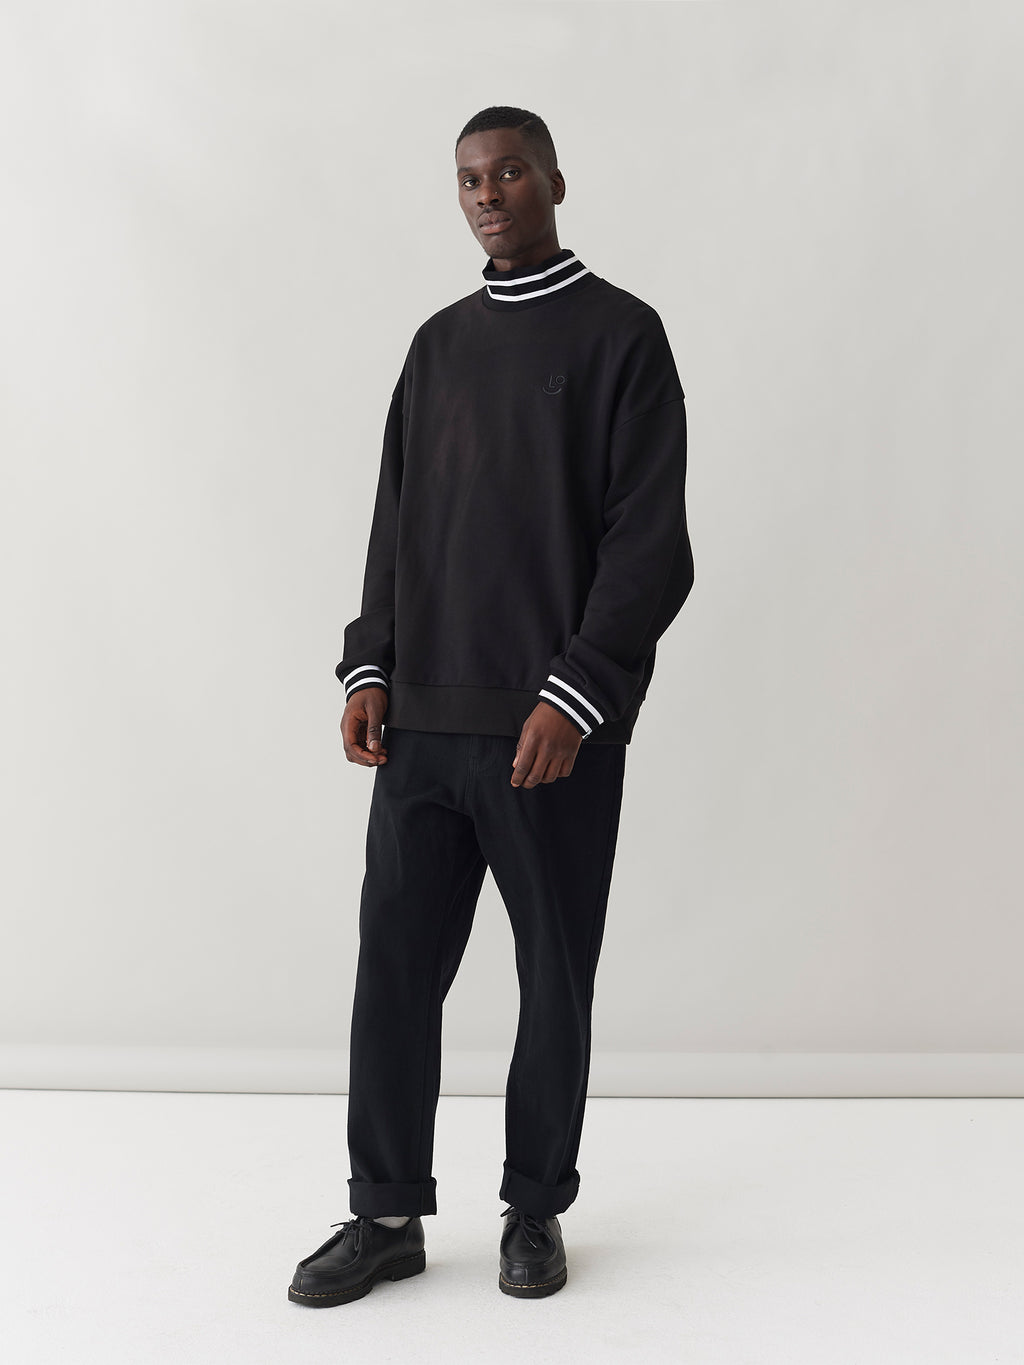 LO High Neck Sweatshirt